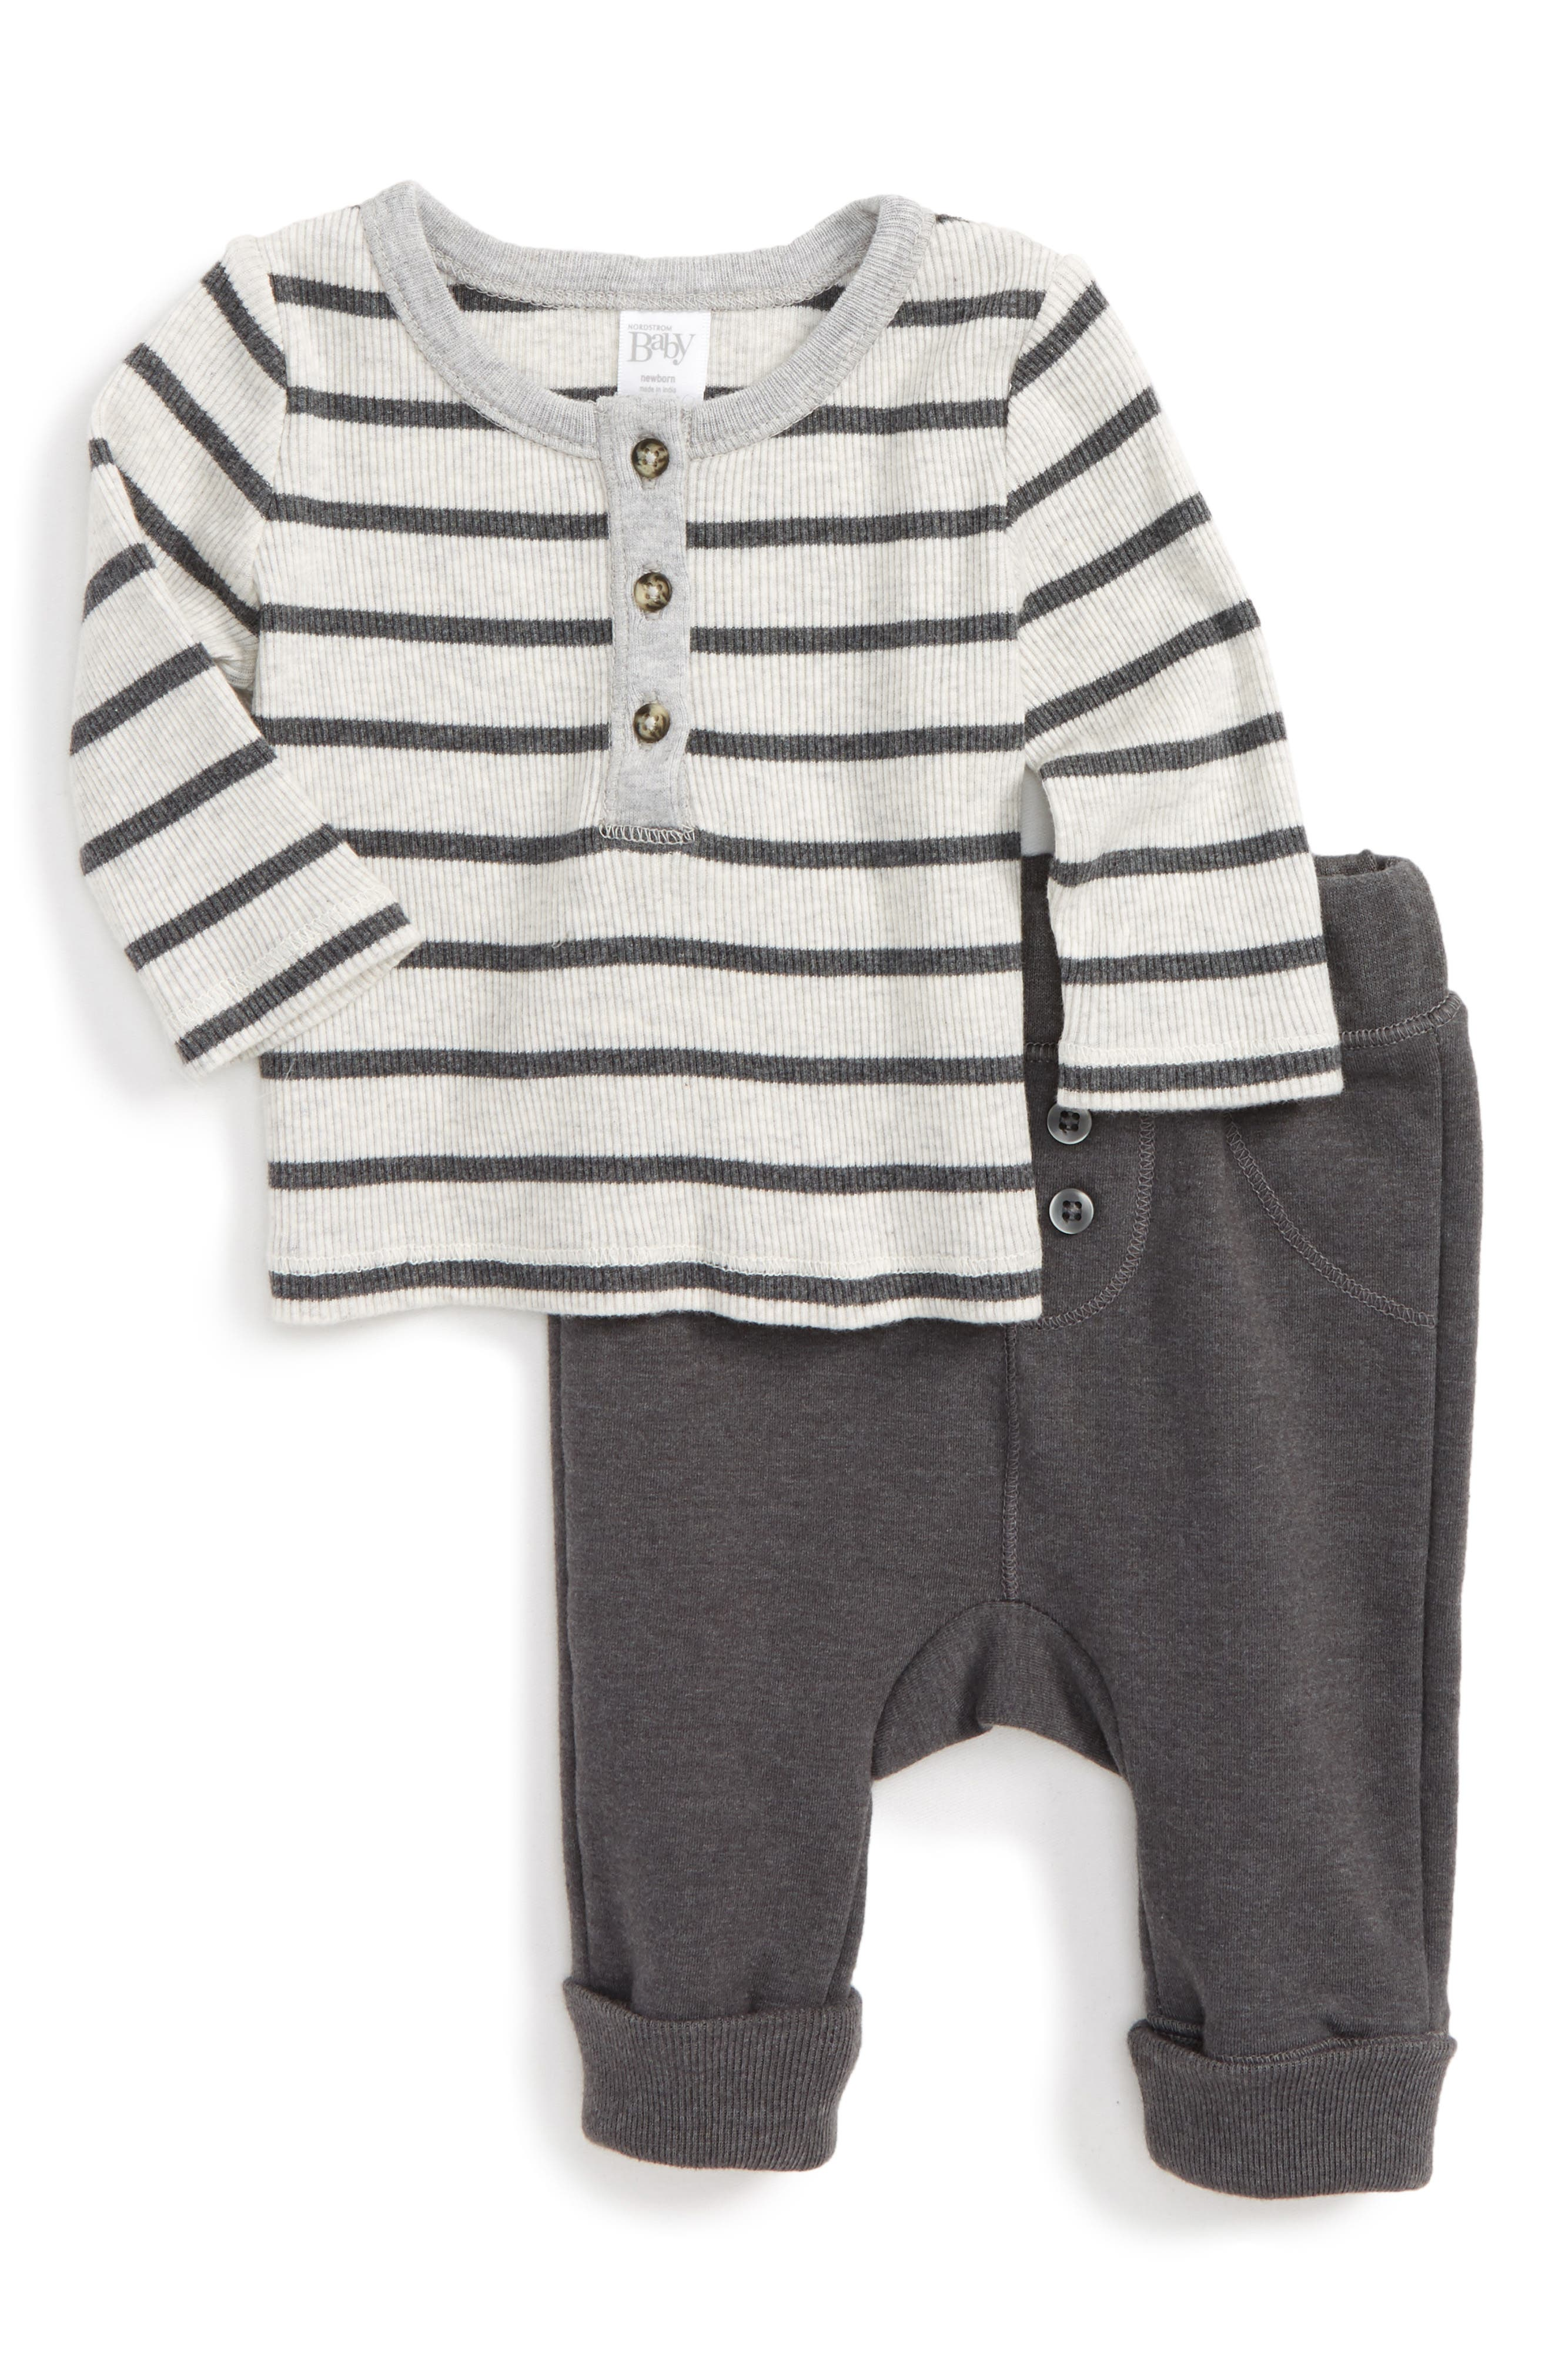 Main Image - Nordstrom Baby Stripe Henley & Terry Pants Set (Baby Boys)